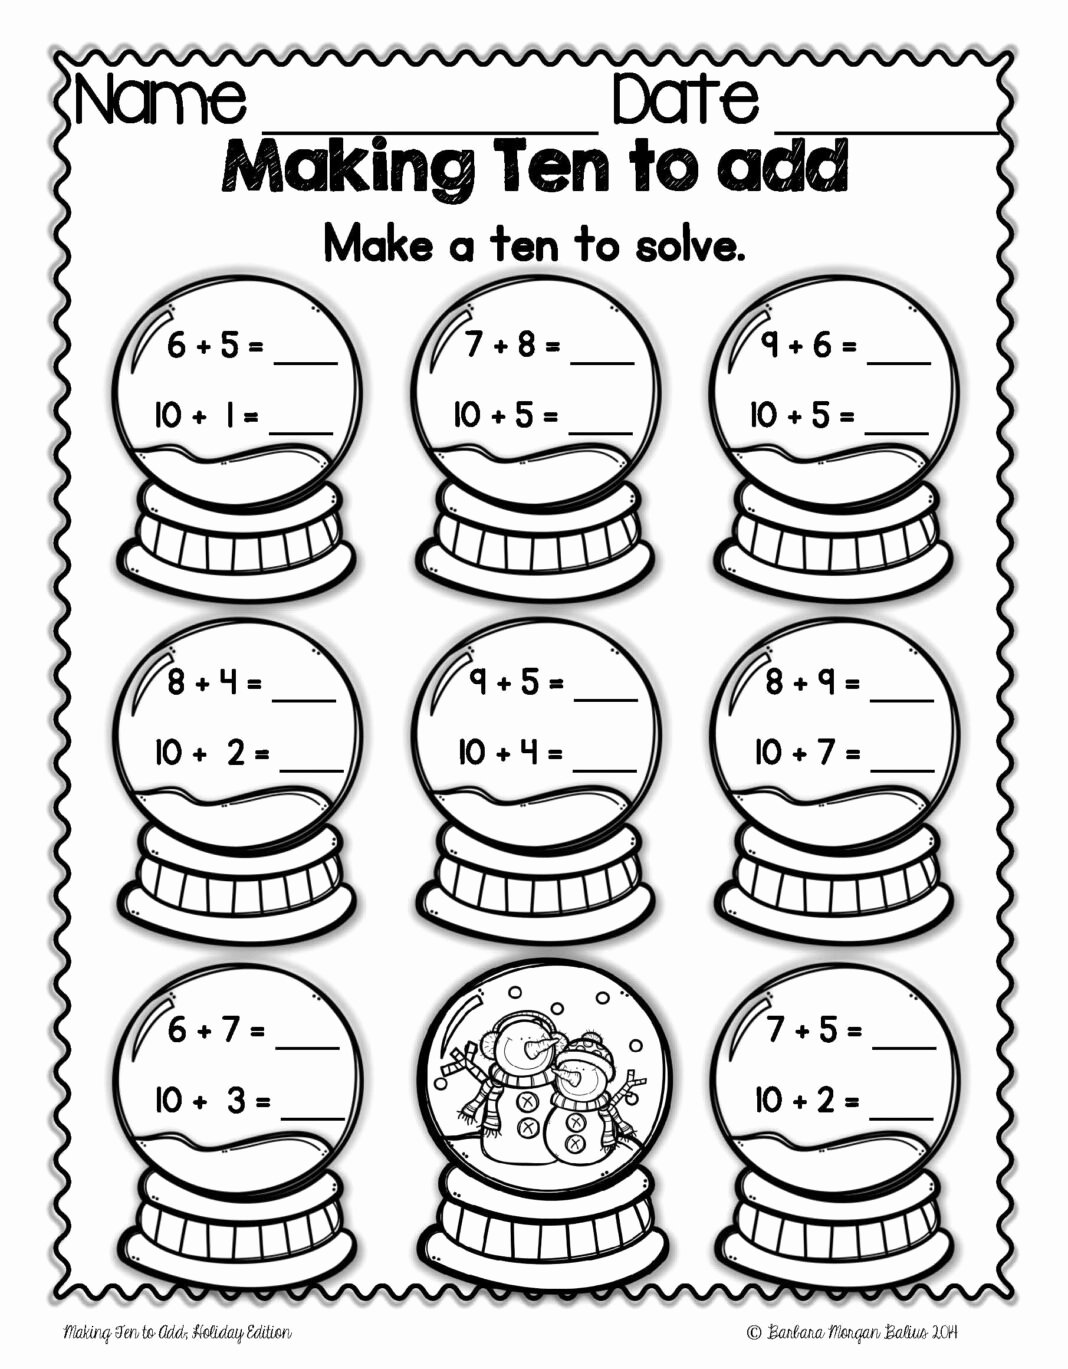 Holiday Multiplication Worksheets Unique Worksheets Christmas Math Making Ten to Mega Holiday